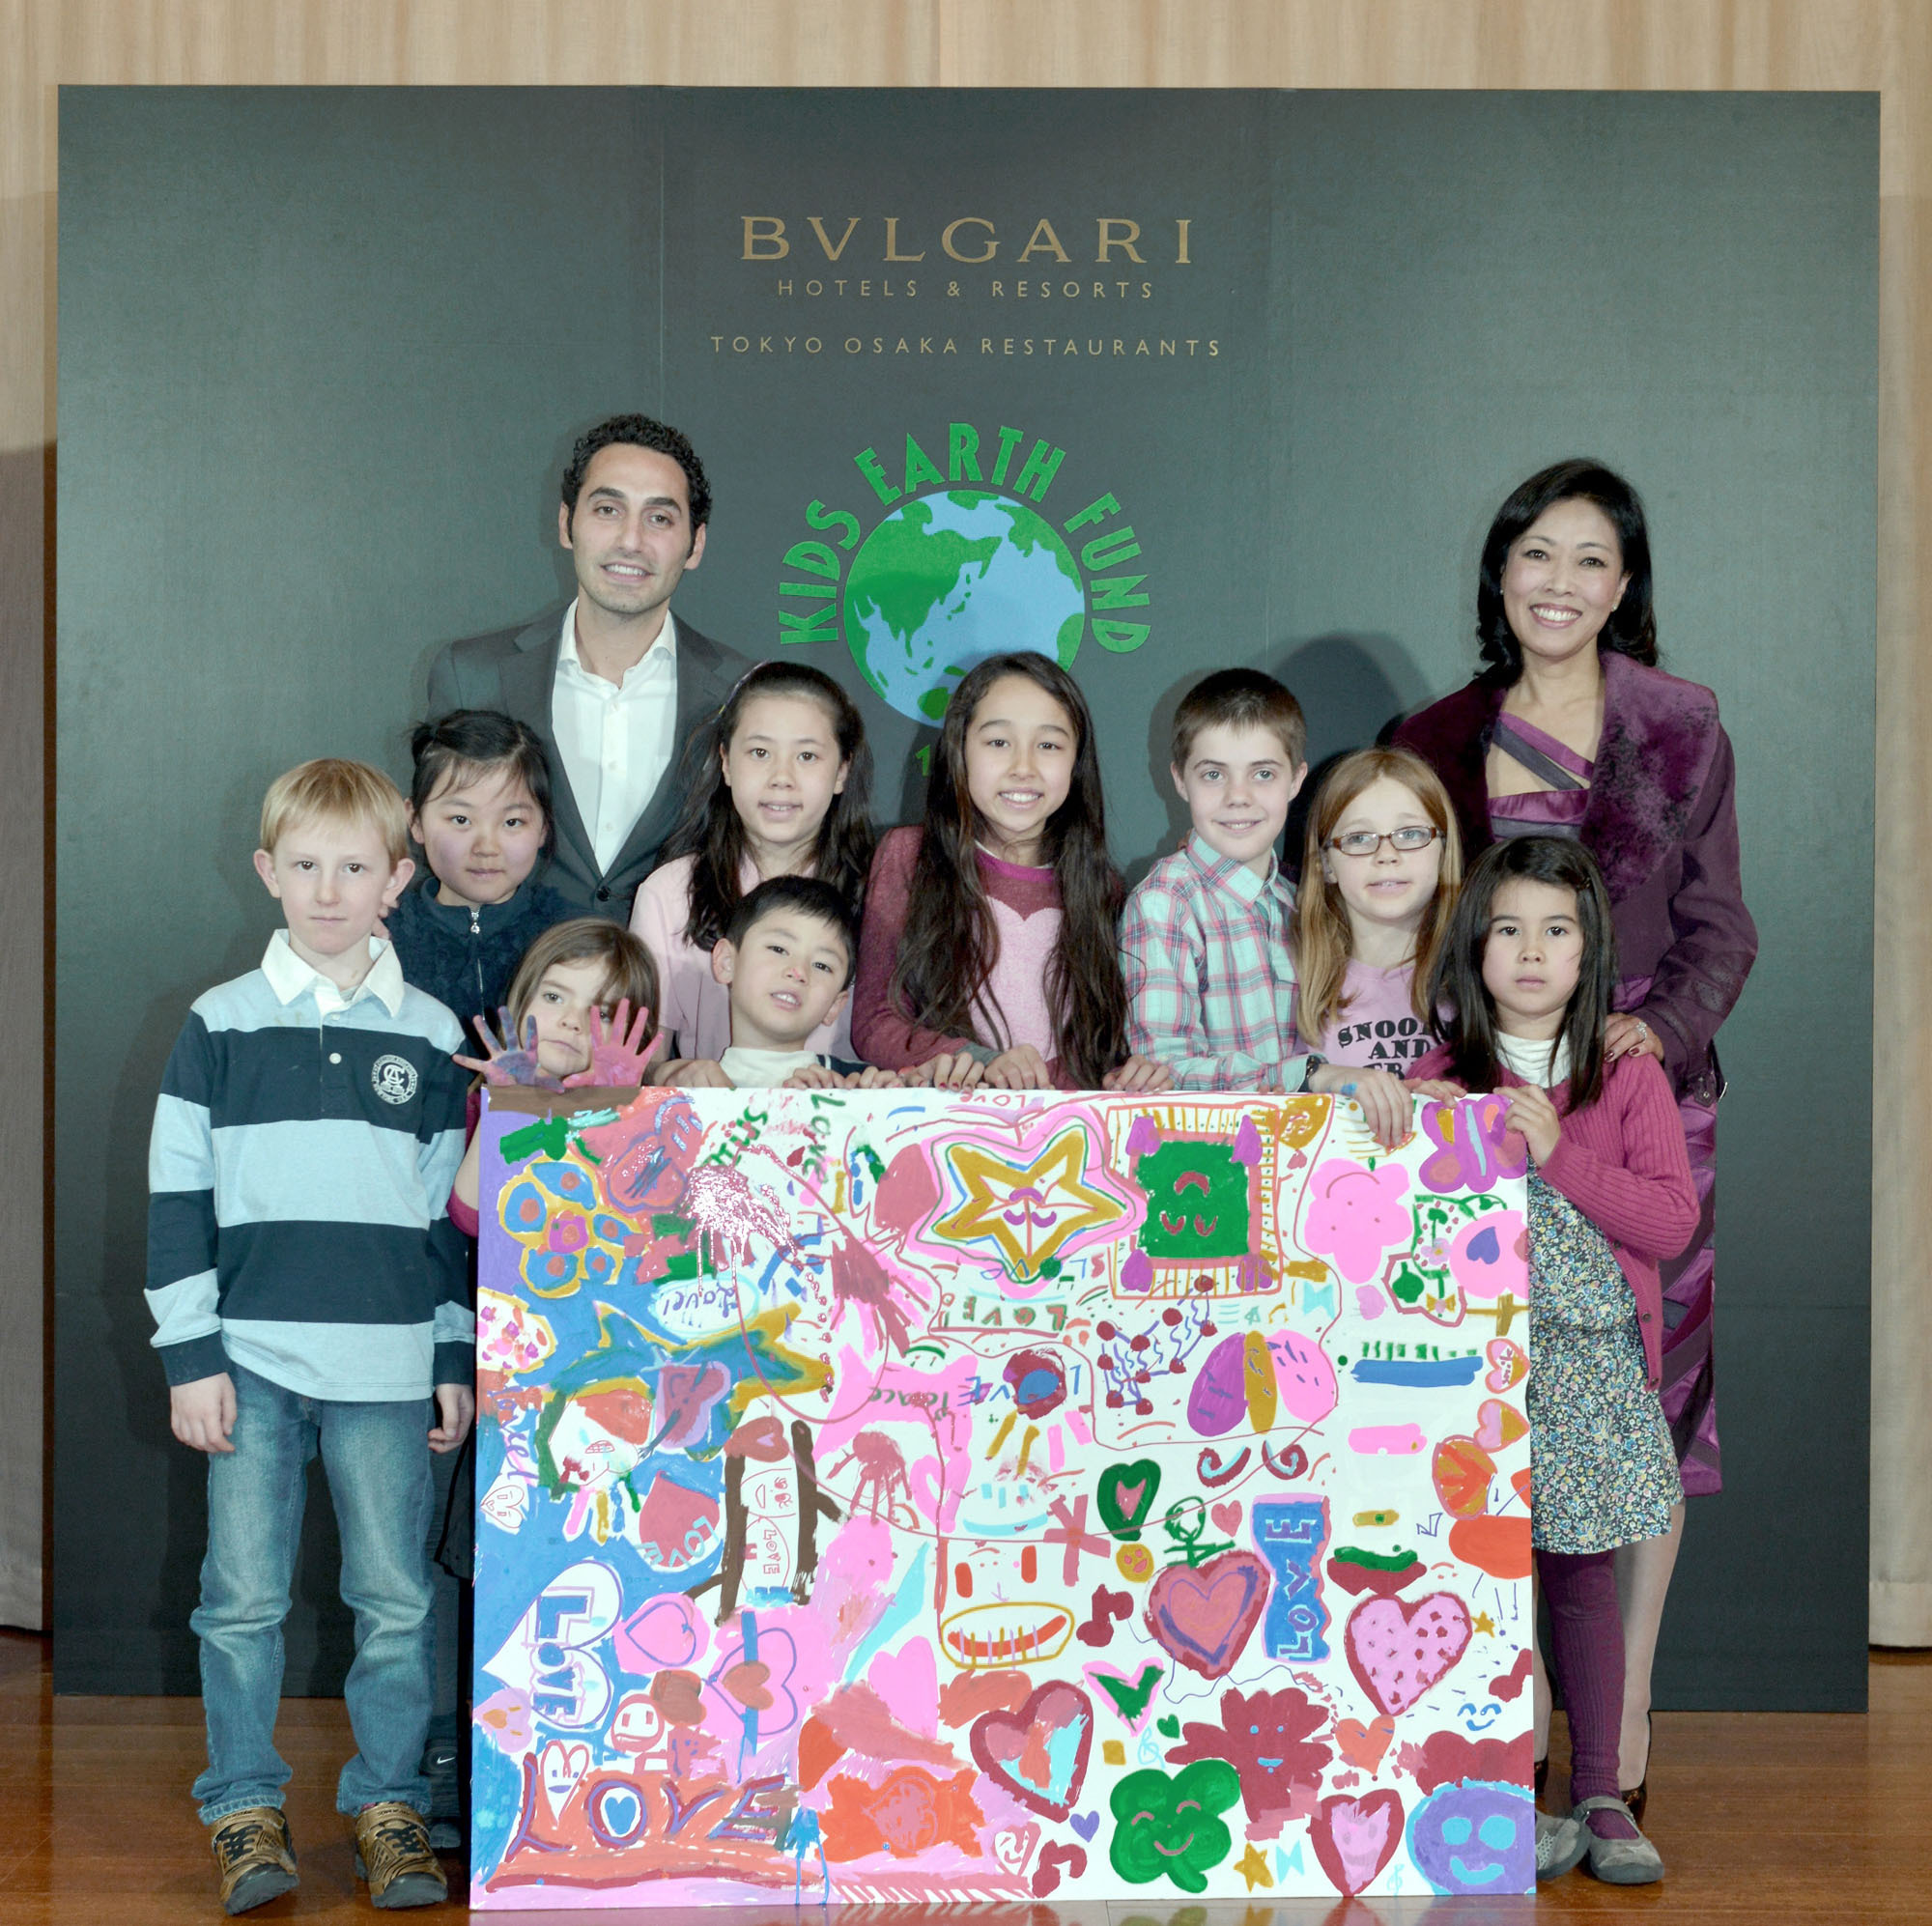 General Manager of Bvlgari Hotels & Resorts, Tokyo-Osaka Restaurants, Goffredo Dell' Appennino (back row, left), and Harumi Torii (back row, right), founder of the Kids Earth Fund, pose with children at an event announcing that a portion of the sales of chocolate products for Valentine's Day will go to the Kids Earth Fund at the Bvlgari Ginza Tower on Jan. 14. |  BVLGALI HOTELS & RESORTS